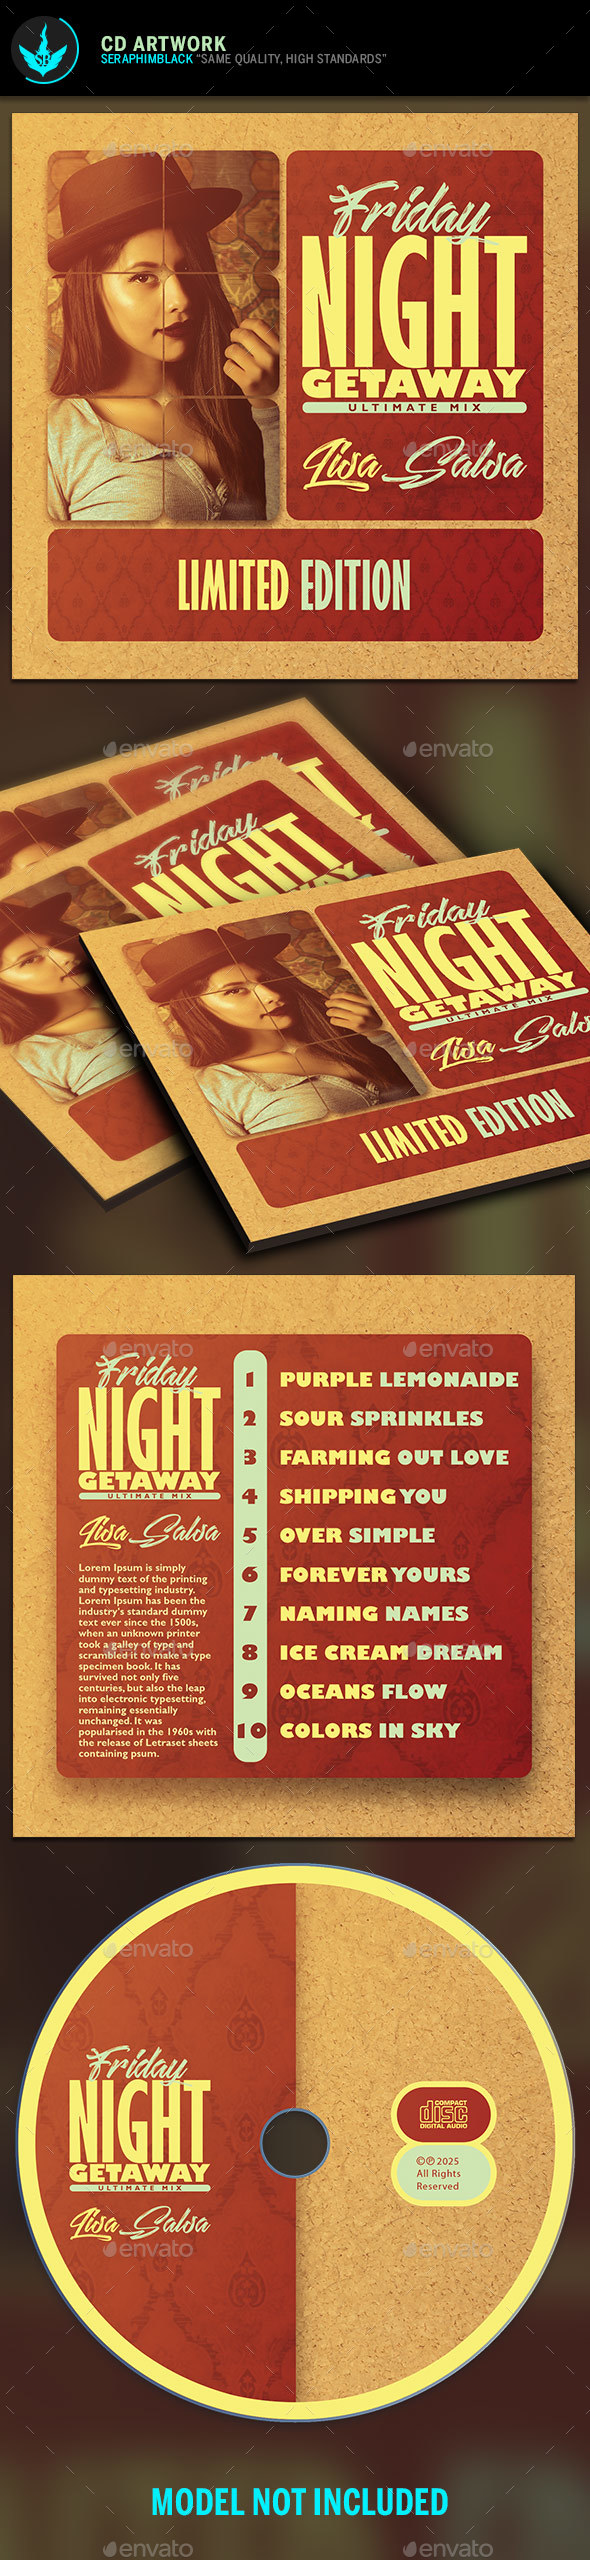 GraphicRiver Vintage CD Artwork Template 20501093